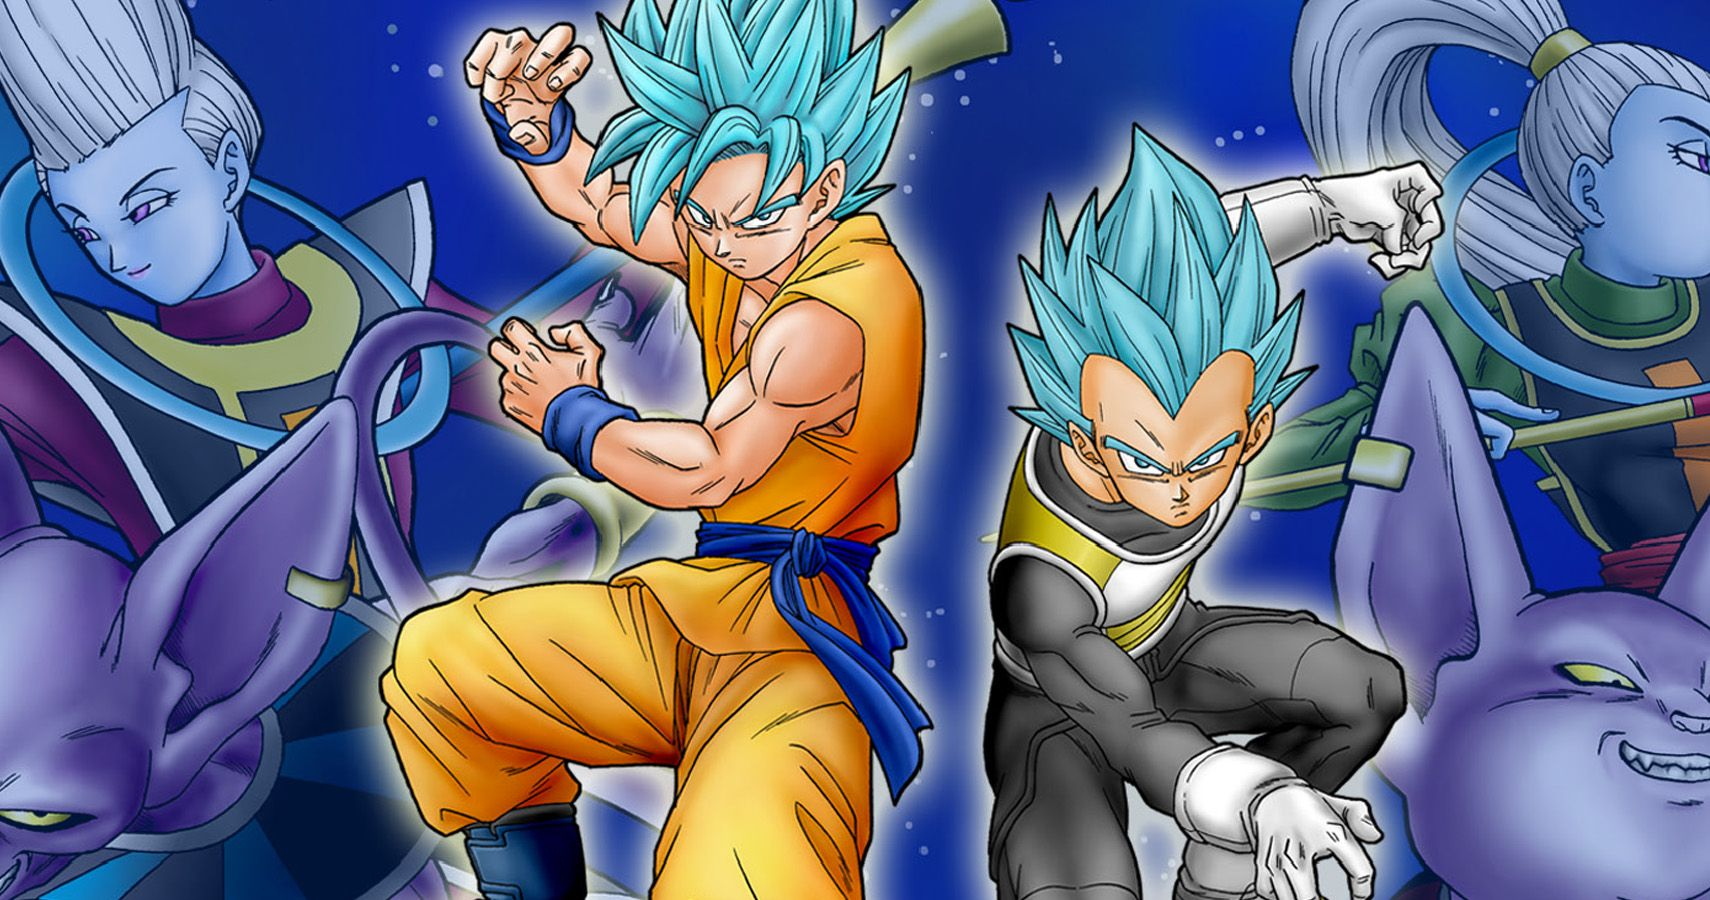 Dragon Ball Super: A Villain Redeems Himself While Another Falls